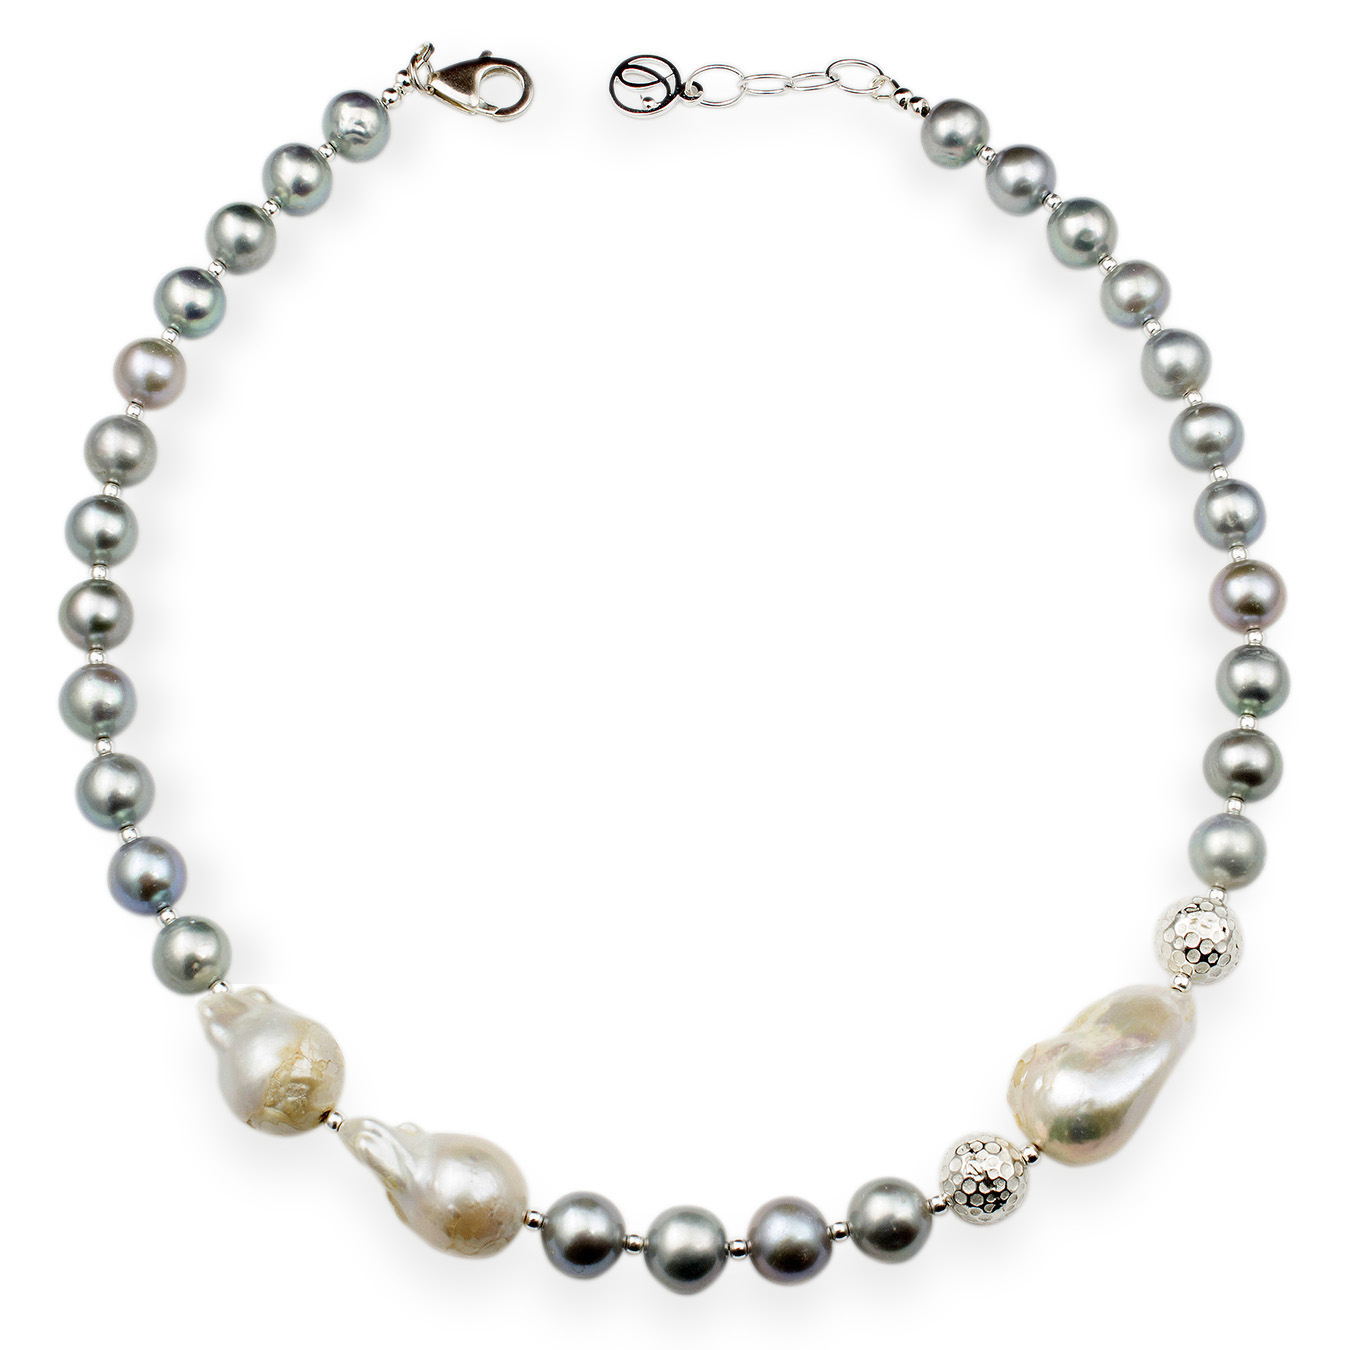 Customizable necklace with choice of AA pearls and nucleated bead